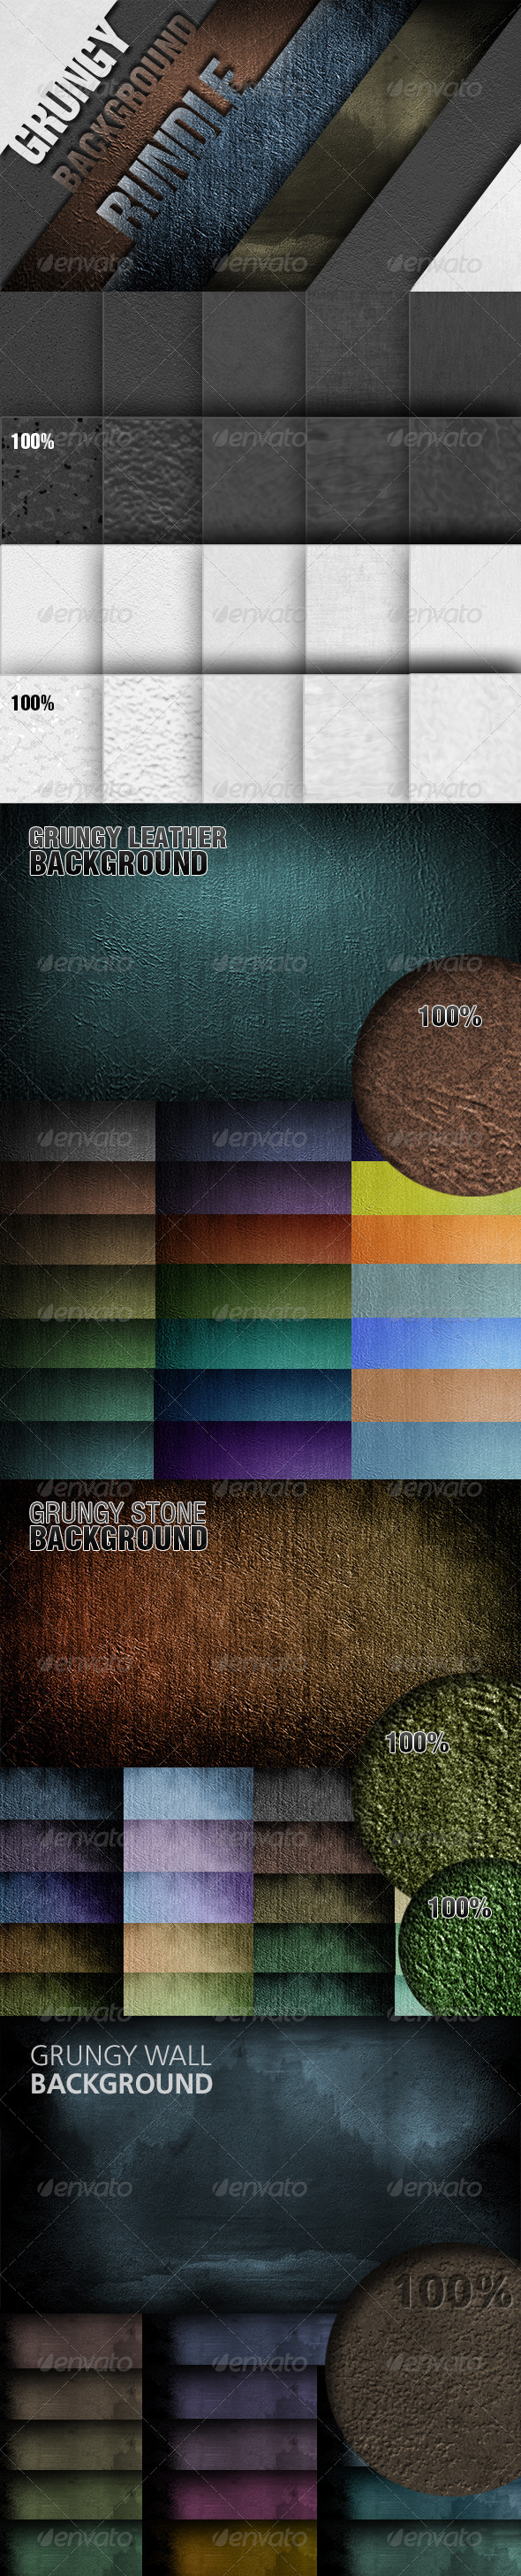 Grungy  Background Bundle - Abstract Backgrounds